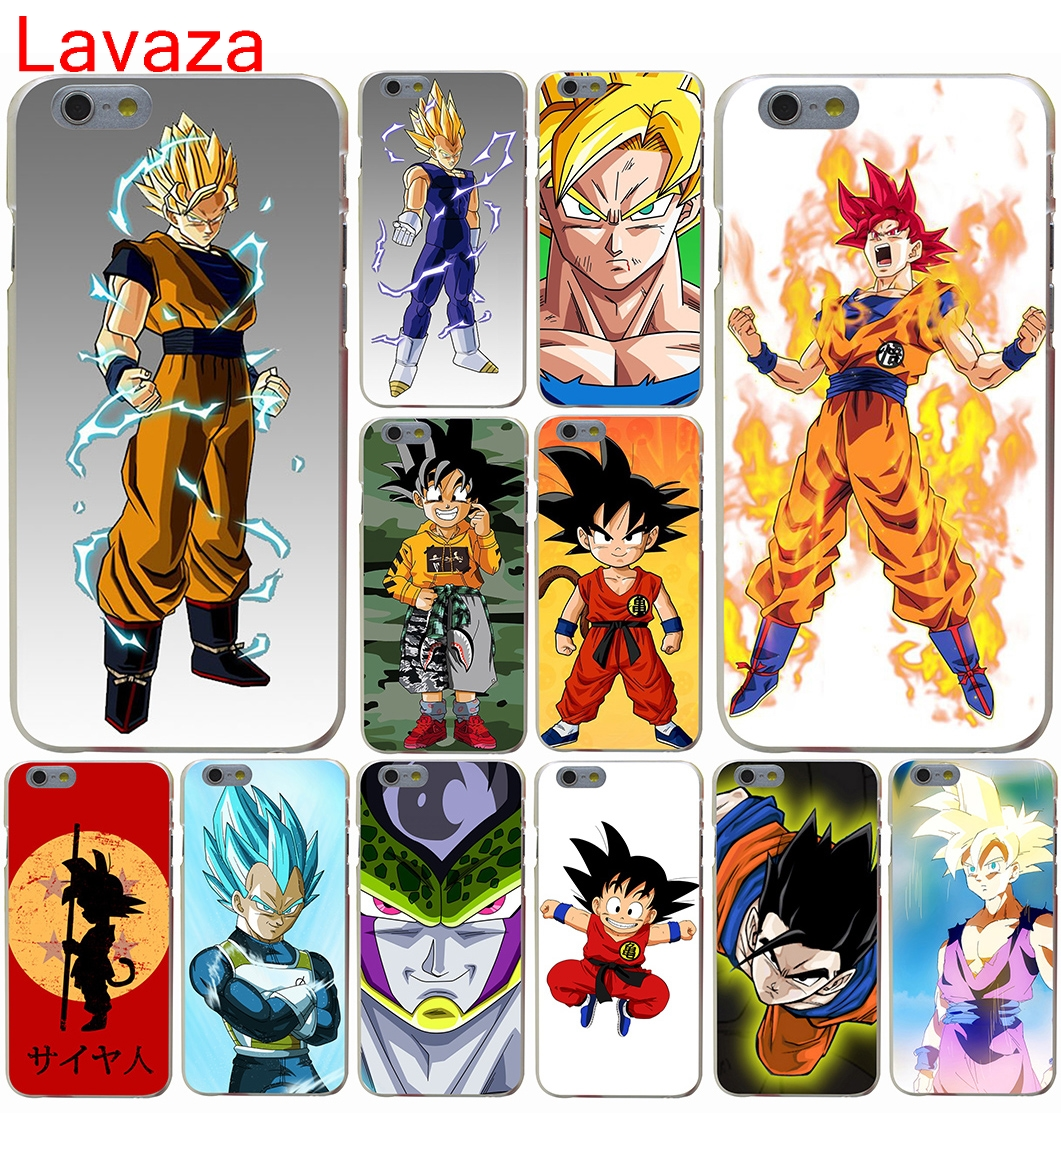 Lavaza Looking For The Dragon Balls Z Son Goku Hard Case for iphone 4 4s 5c 5s 5 SE 6...  z iphone 7 case | Incipio iPhone 7 Case Lineup Lavaza Looking For The Dragon Balls font b Z b font Son Goku Hard font b